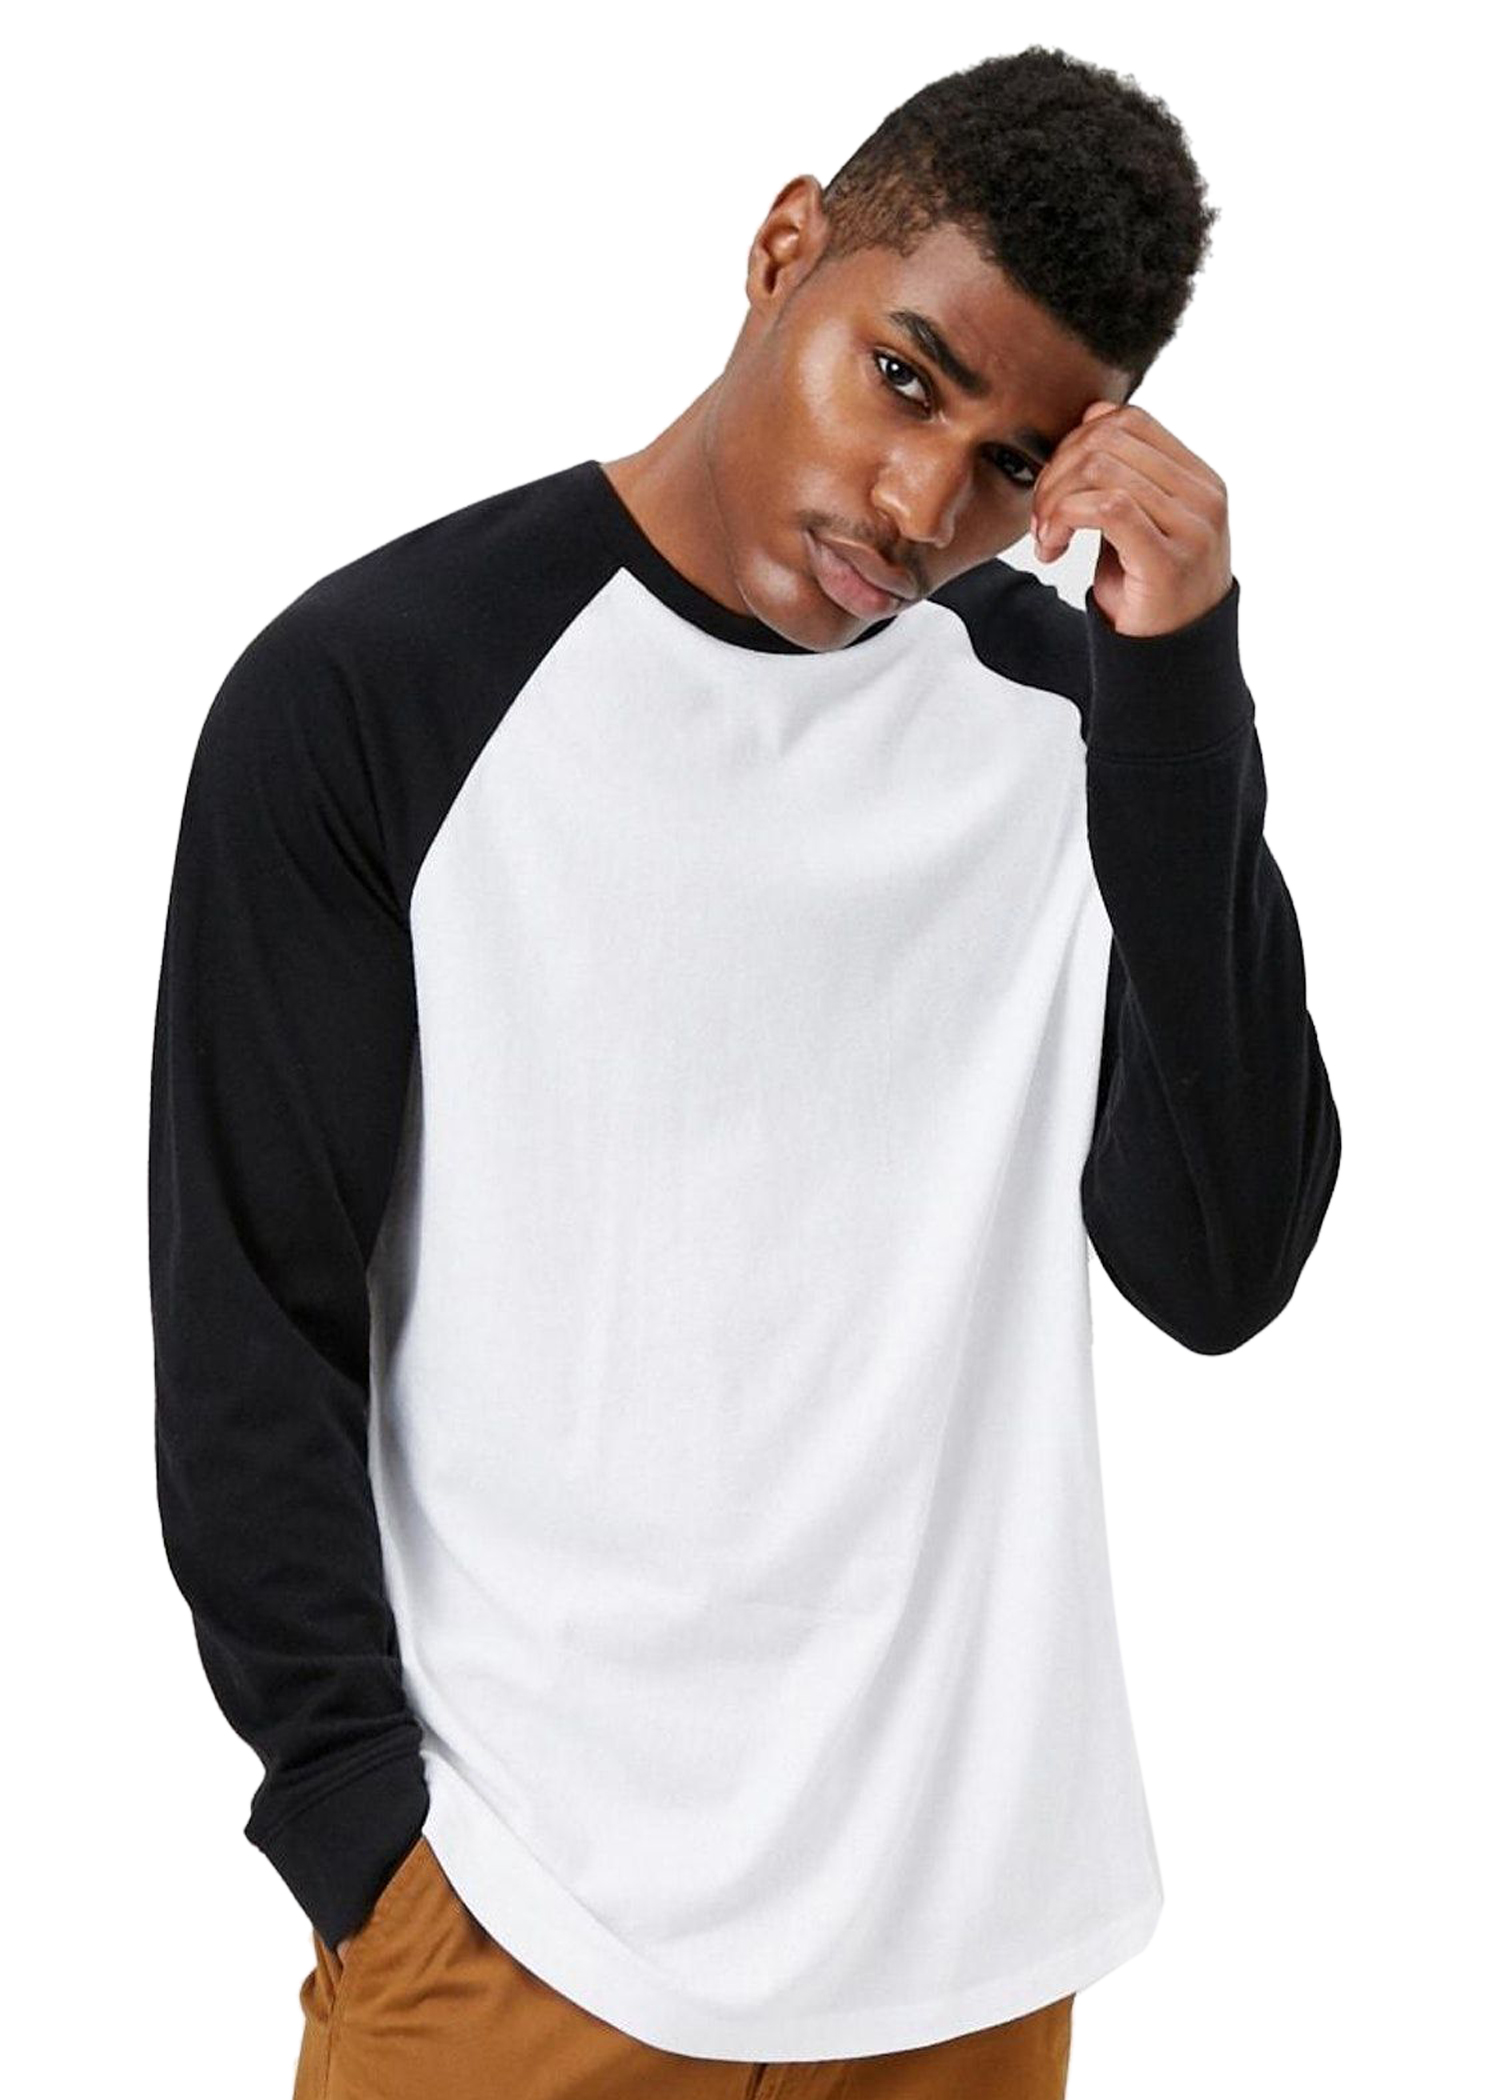 Pause Sport Cotton Solid Full Sleeve Round Neck Slim Fit White Men's T-Shirt